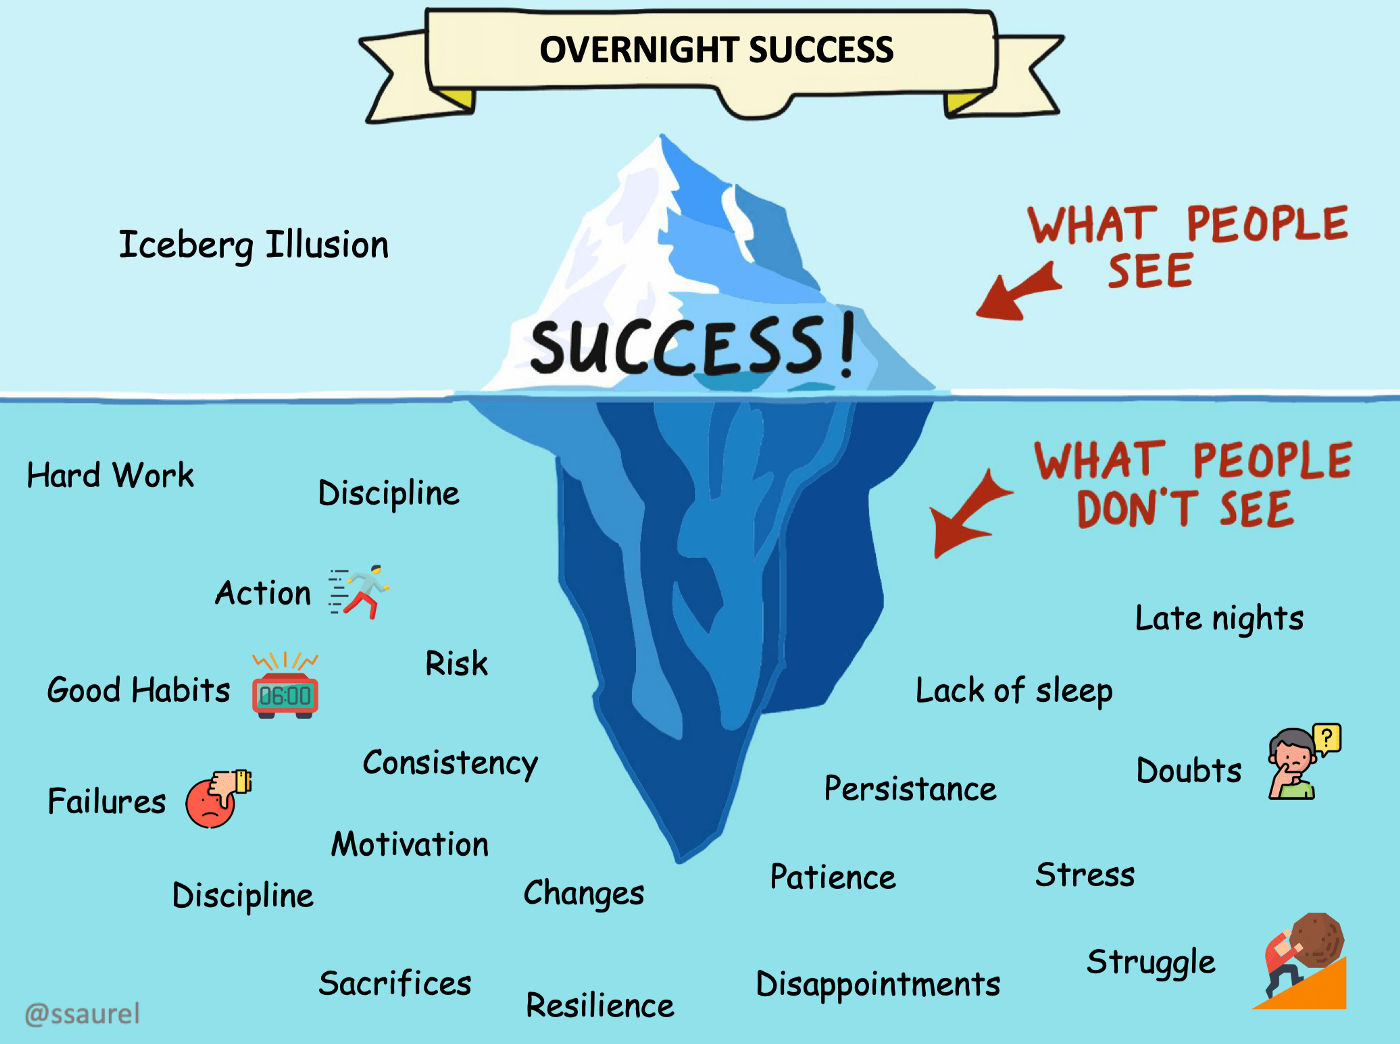 [Image] Overnight Success Exists, but It Happens Only for Those Who Build It Daily Over Years